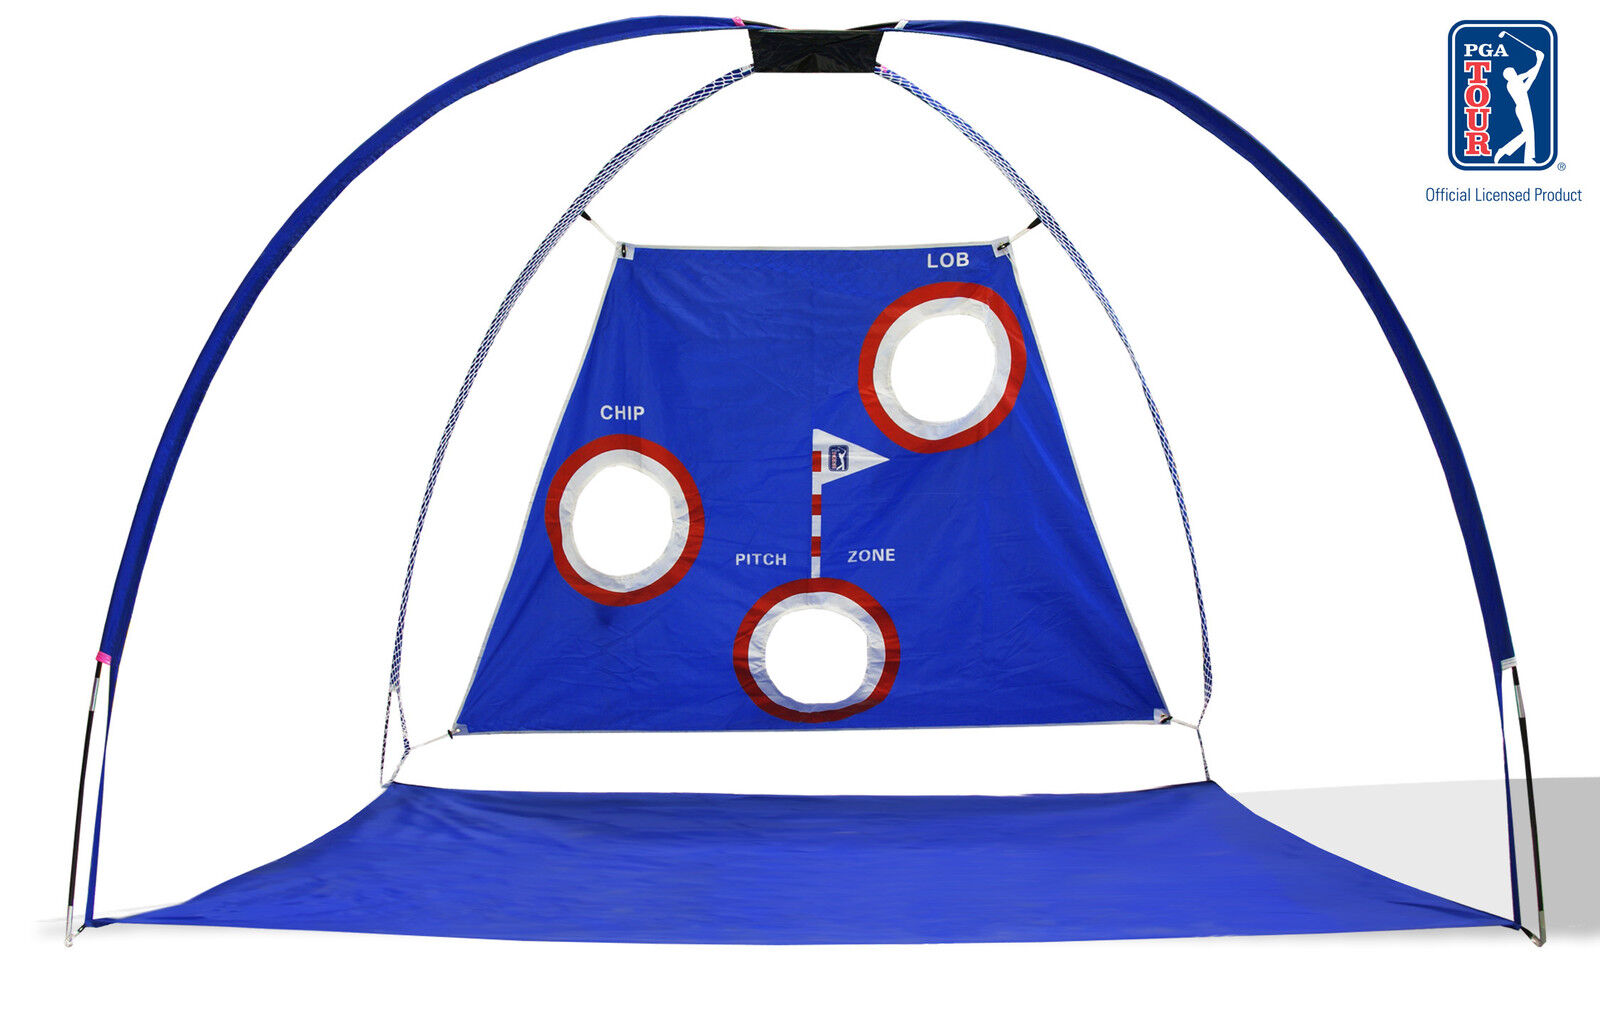 Huge Official Pga Tour Golf Practice Training Cage - Driving Net With 3 Targets